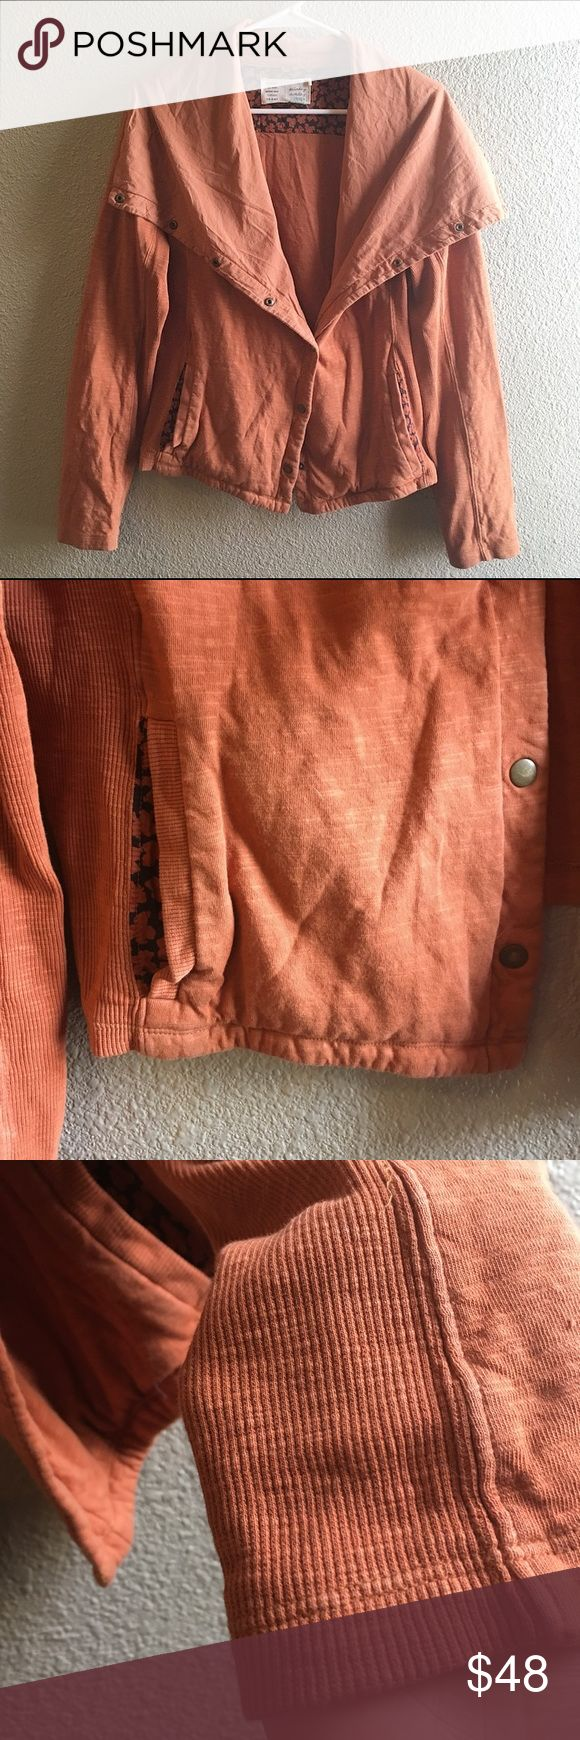 Anthropologie Saturday Sunday Fall Jacket Sweater type material jacket with snap closures. A great rust orange EUC 💕 Anthropologie Jackets & Coats Utility Jackets